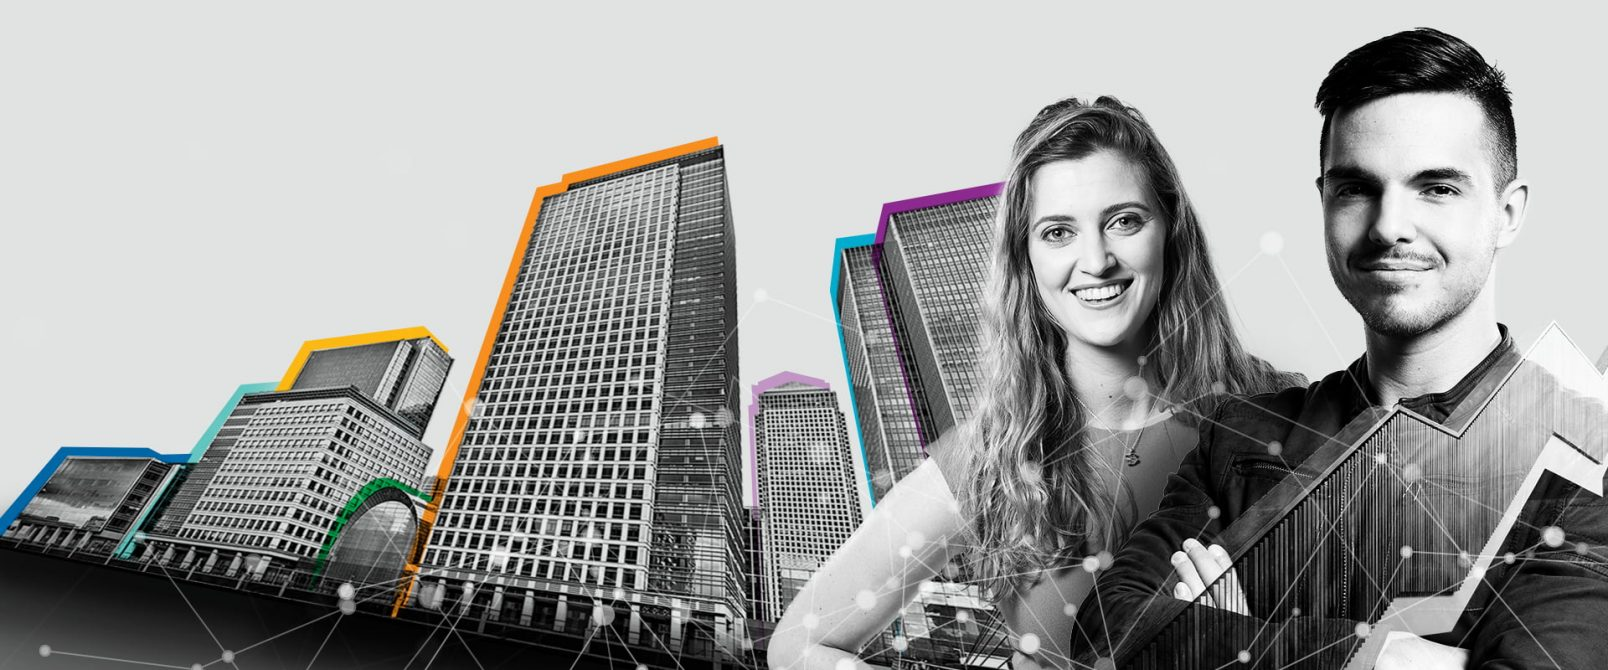 1920x800-earlyCar_Holly_serban_0003_Vector-Smart-Object